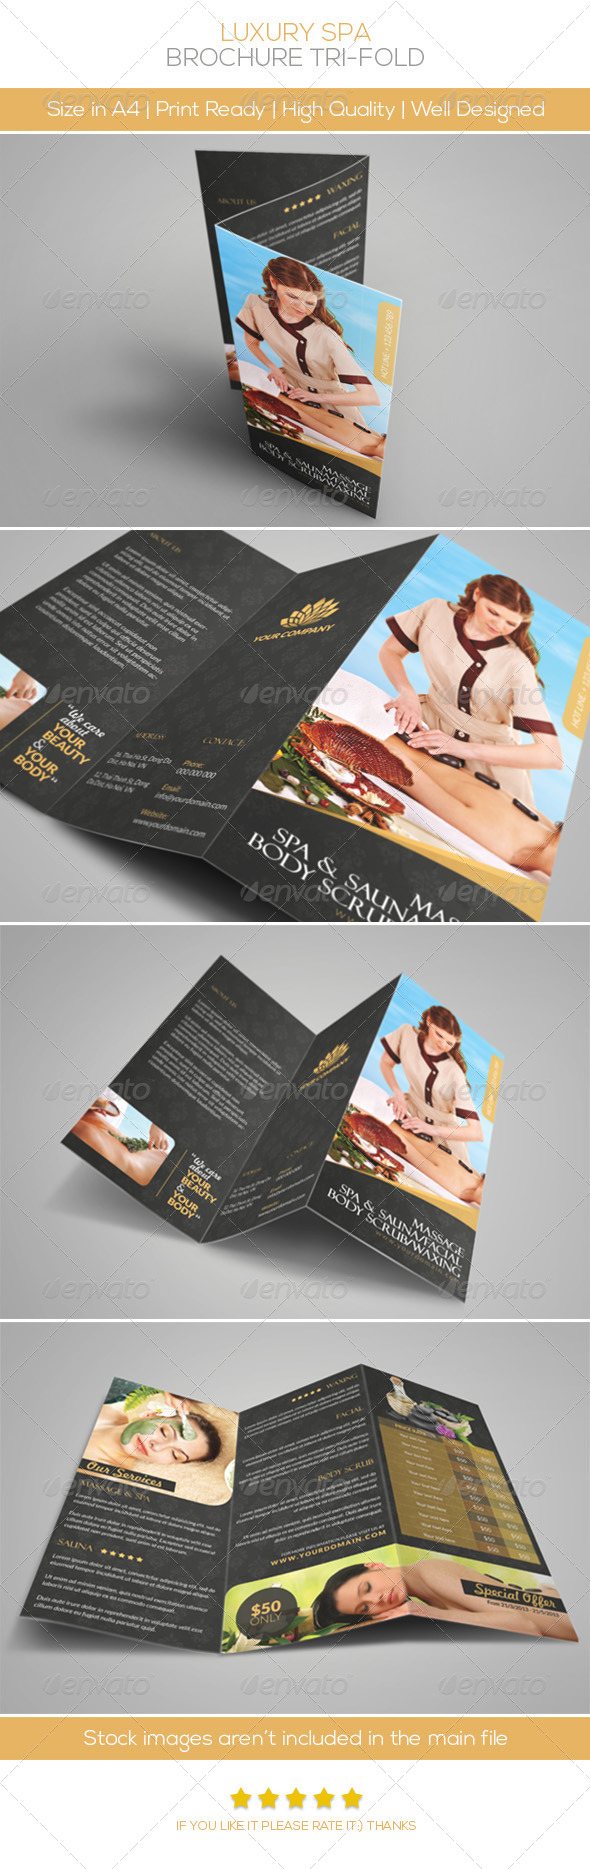 luxury brochure template - luxury spa brochure tri fold by hoanggiang12 graphicriver